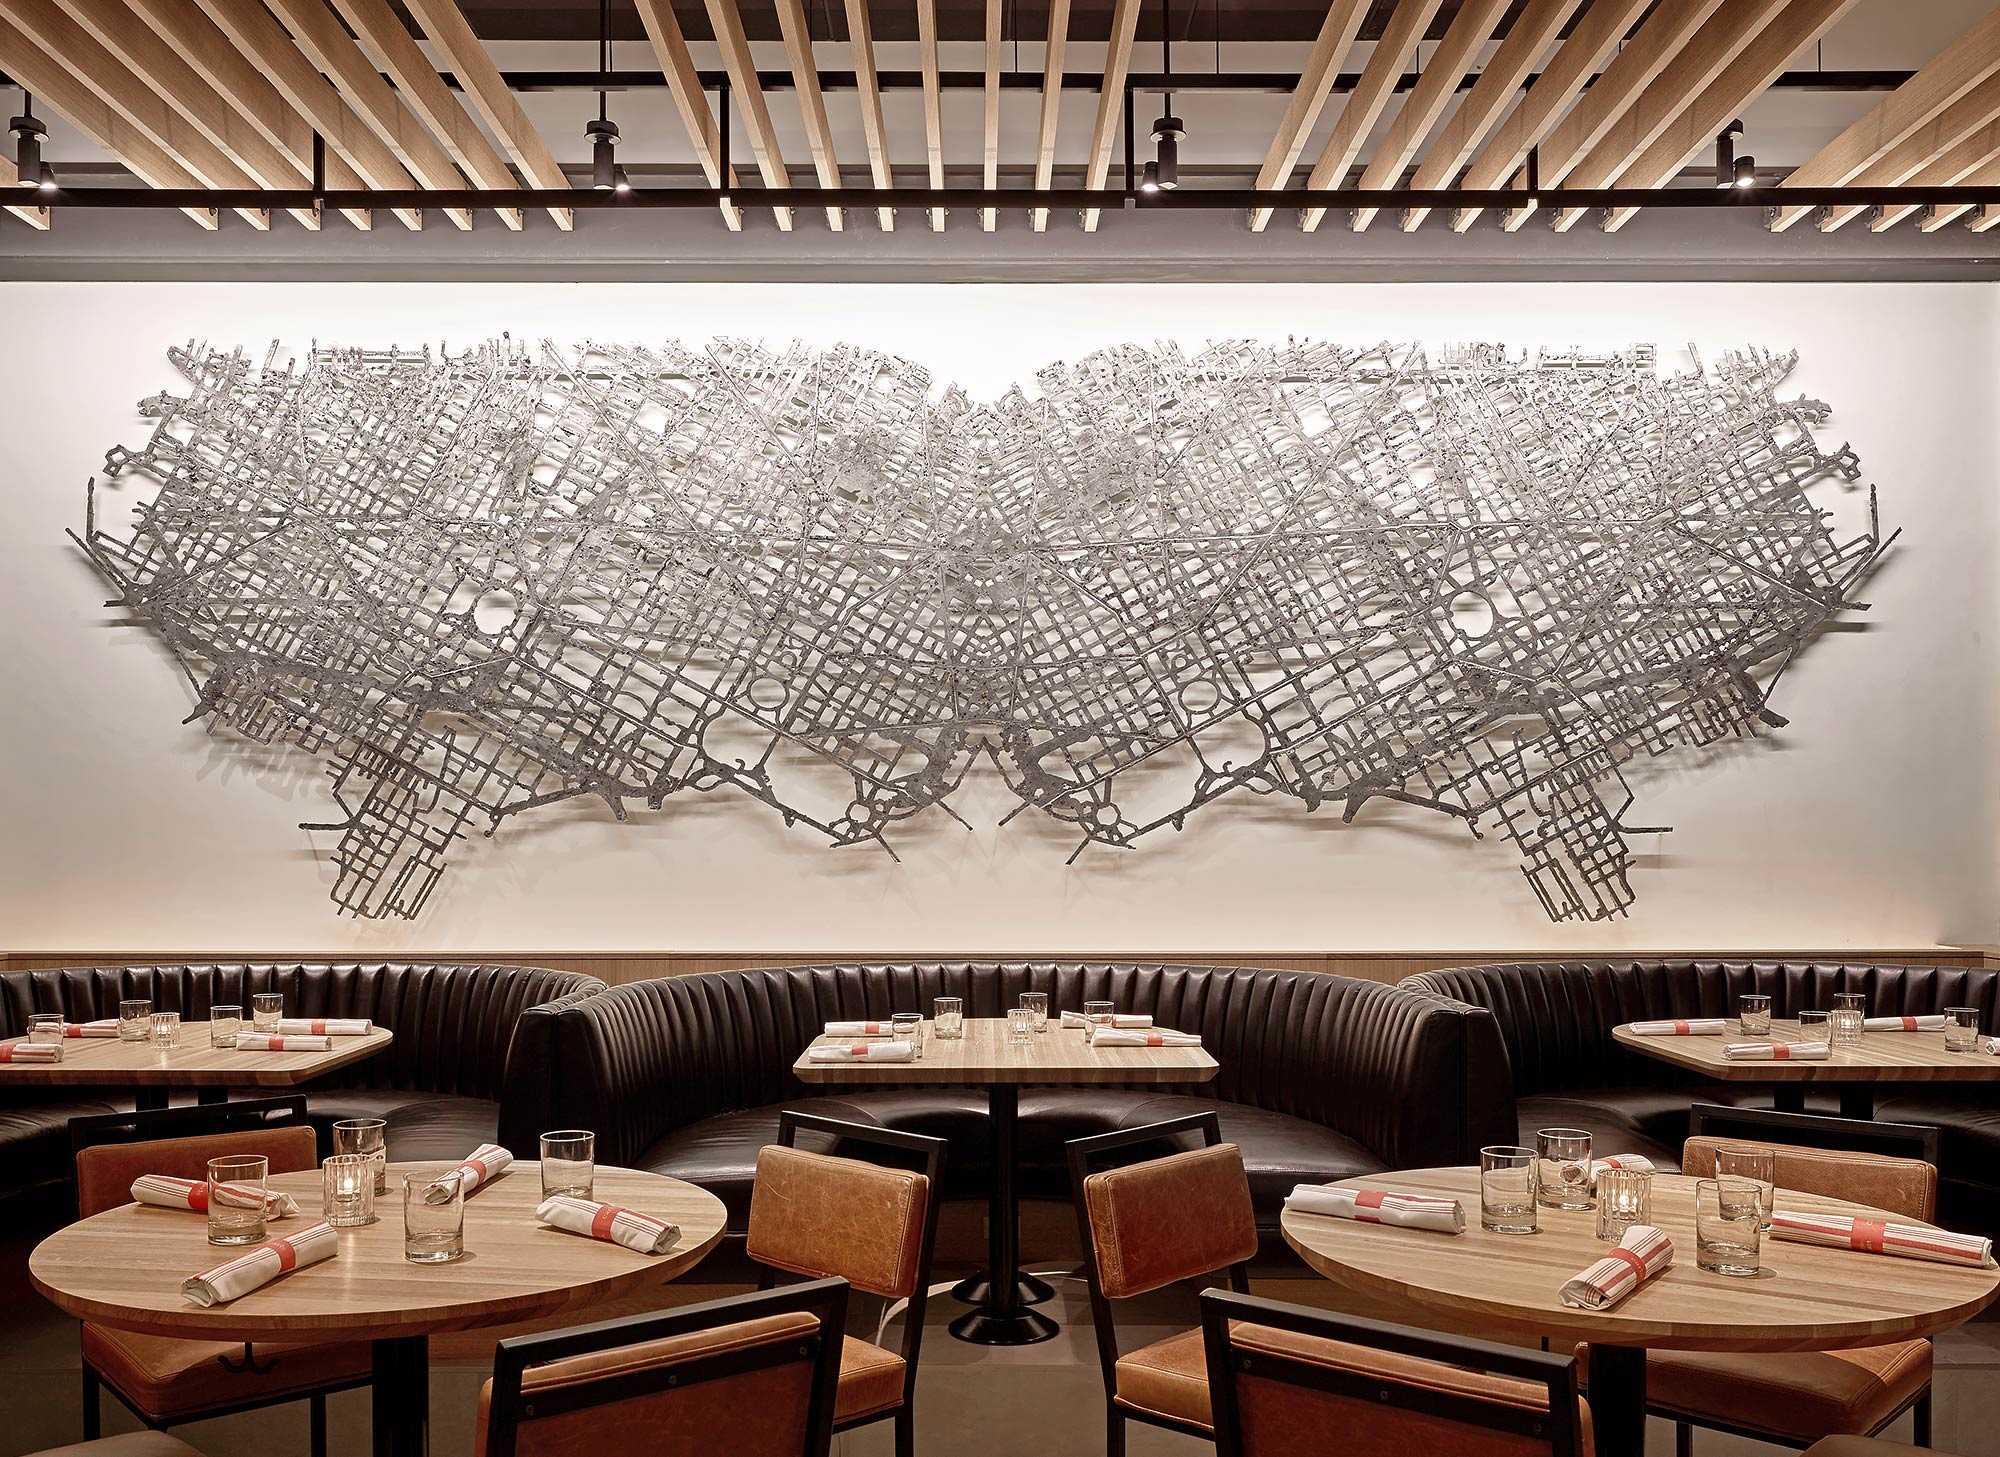 Restaurant-Interior-Metal-Art-Sculpture